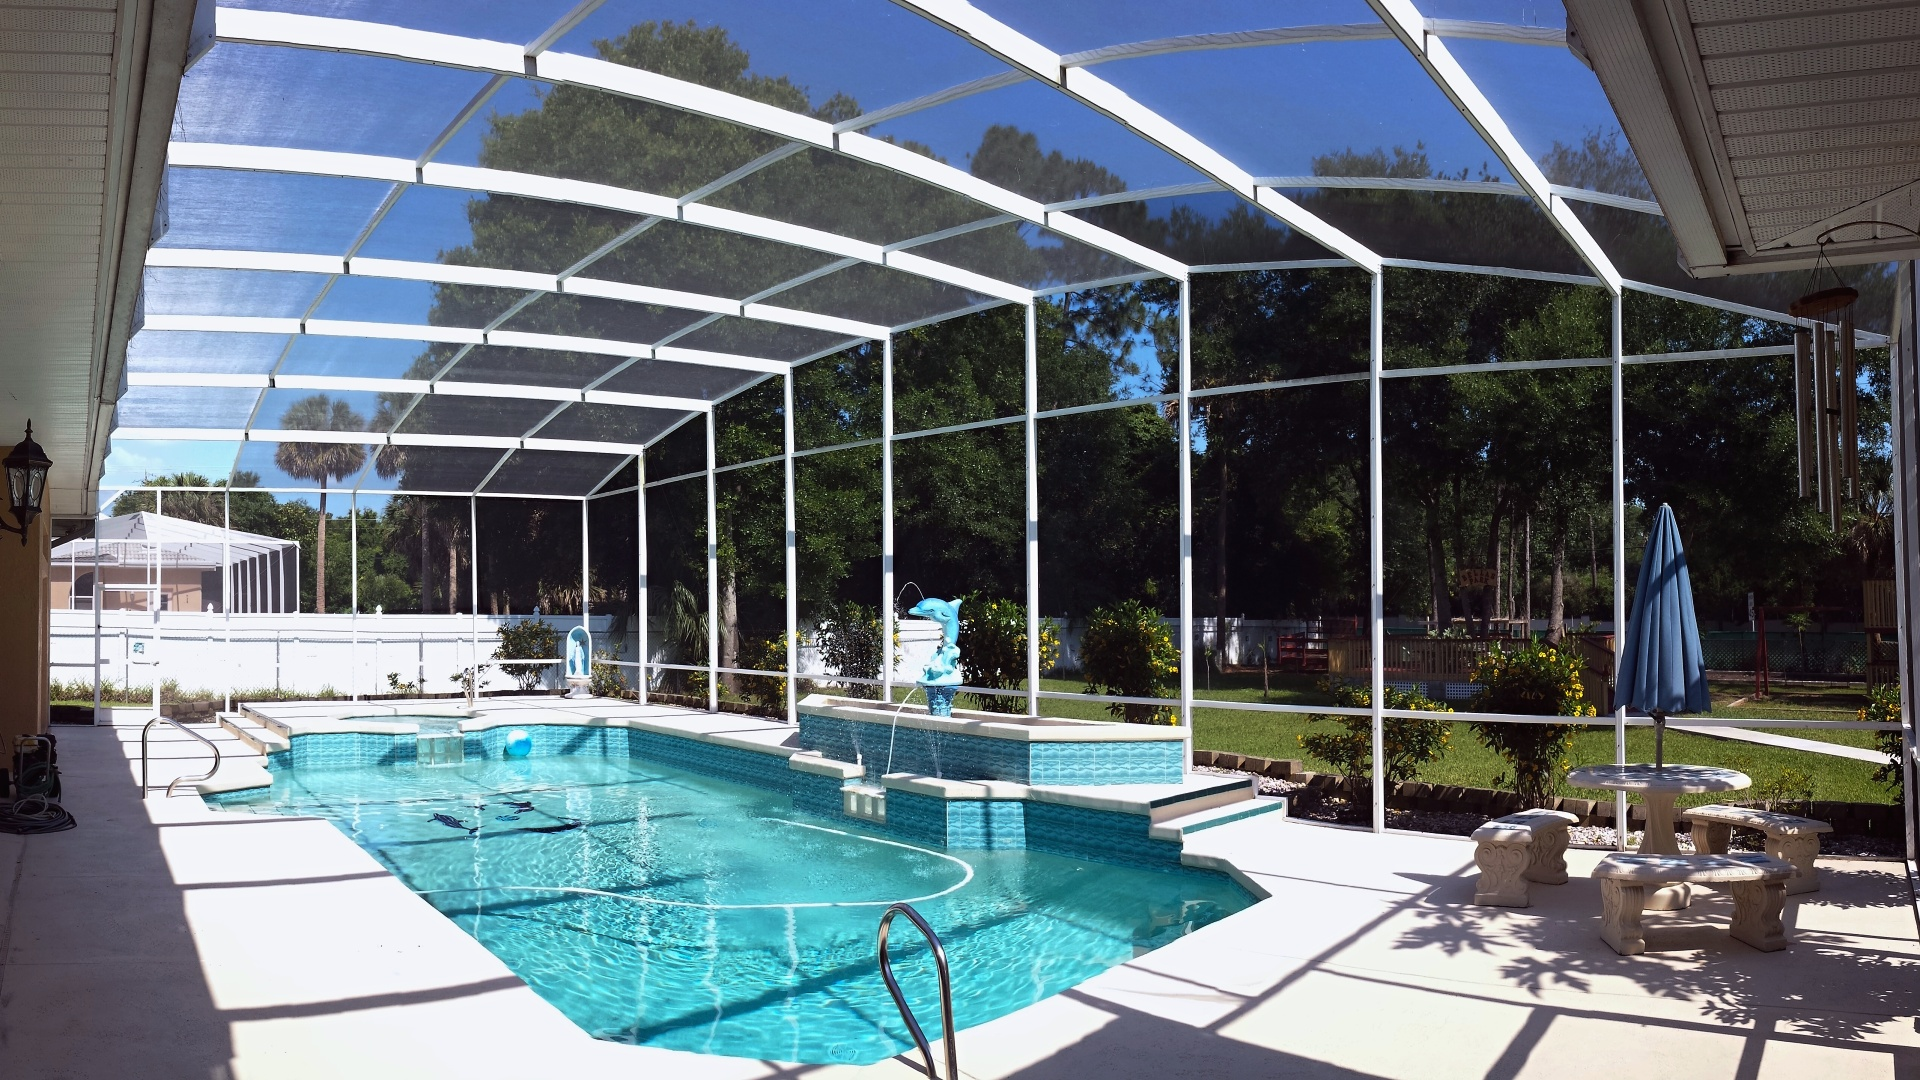 pool-screen-repair-port-orange-05-1080p.jpg